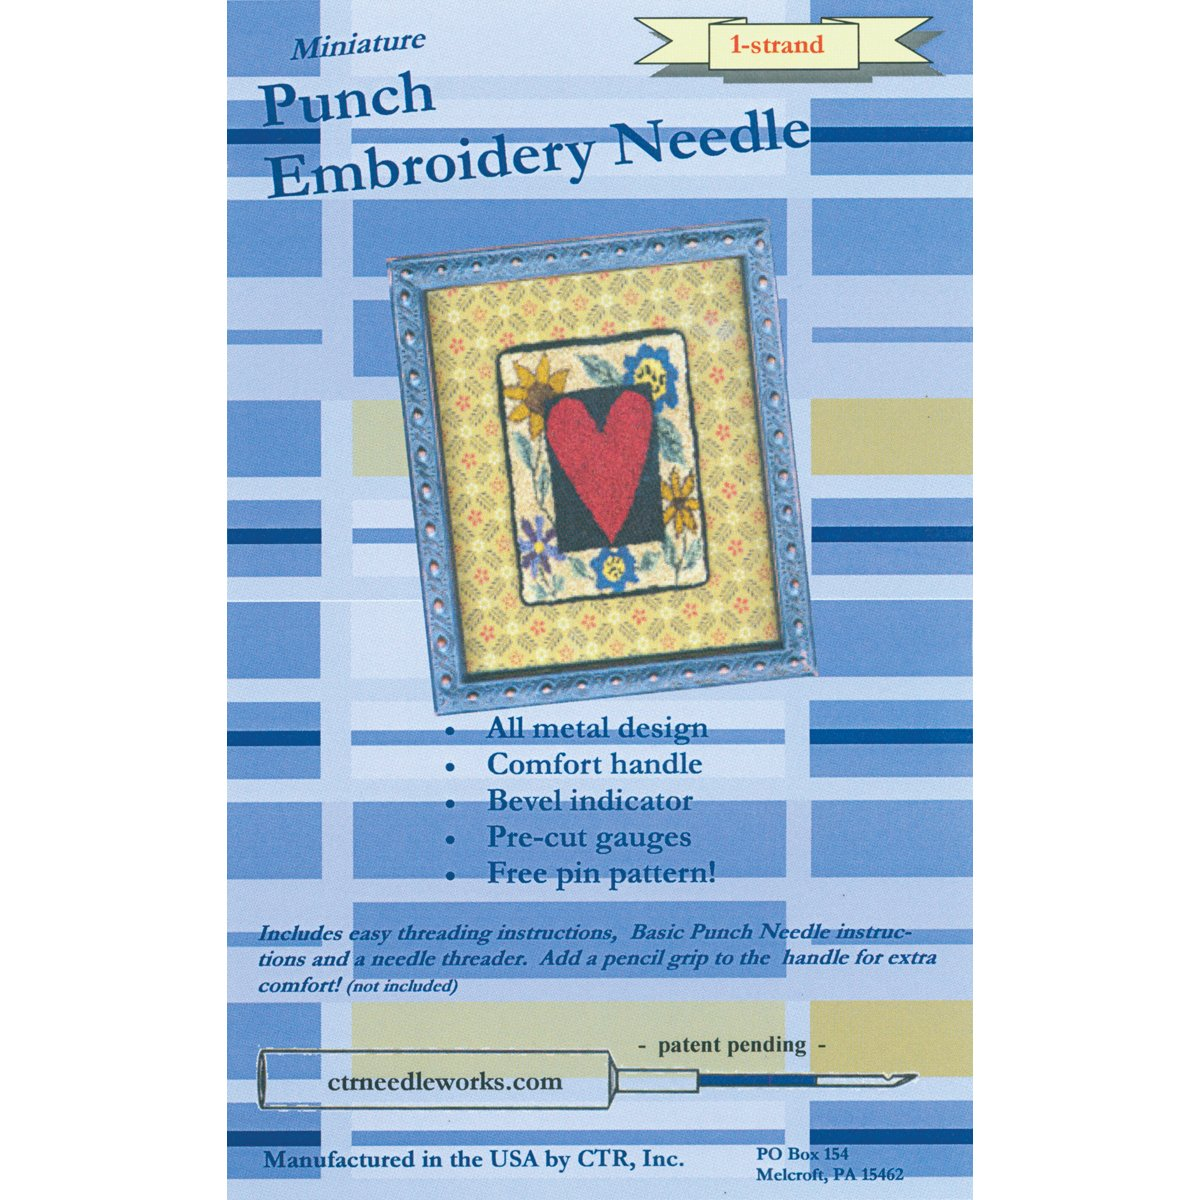 CTR CTR-NDL-1 Miniature Punch Embroidery Needle, 1-Strand, Blue